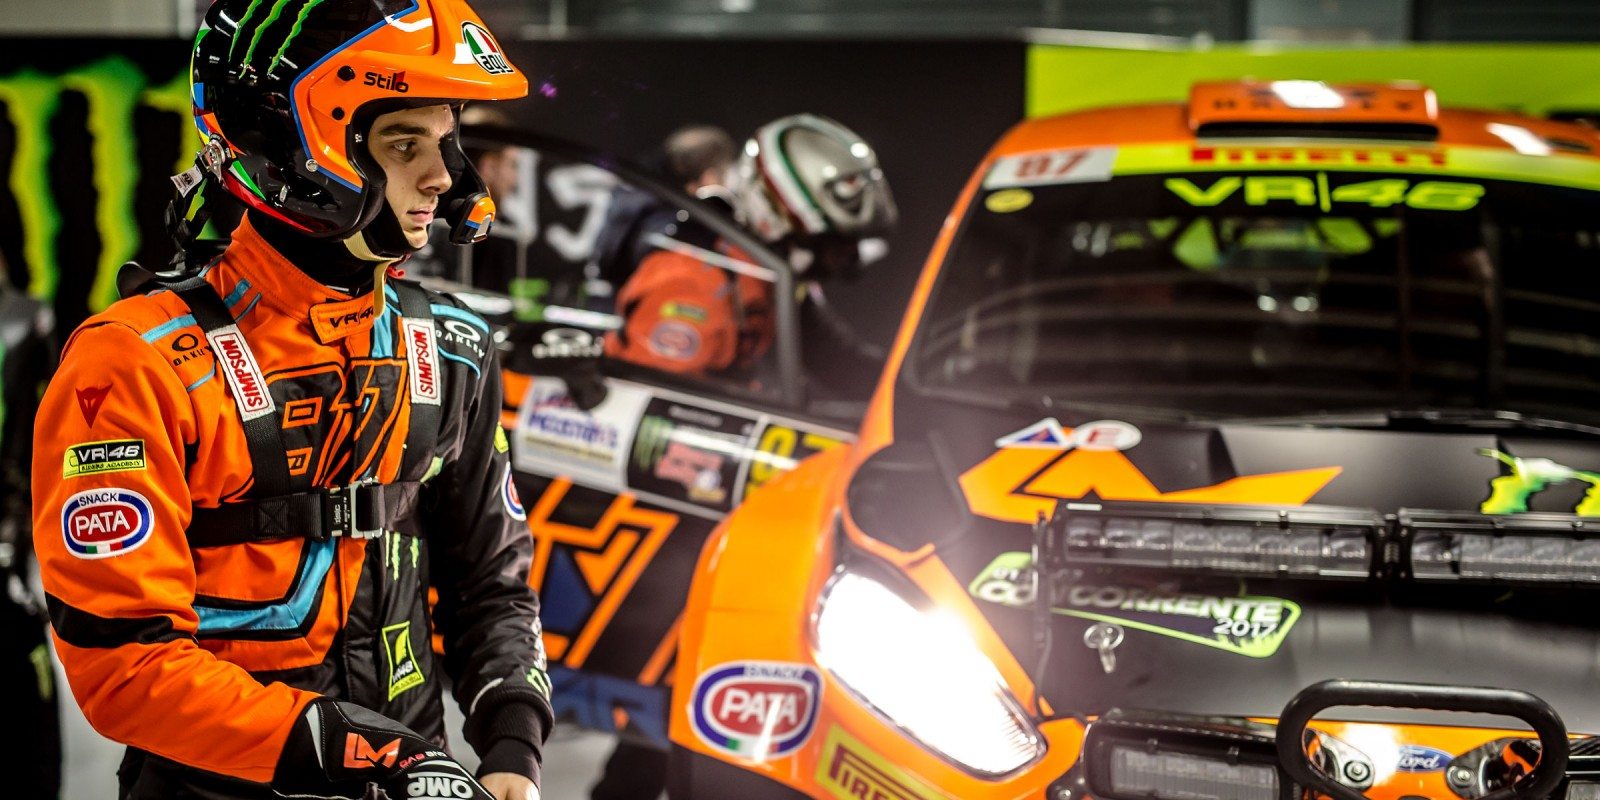 Monster athletes at the Monza Rally show